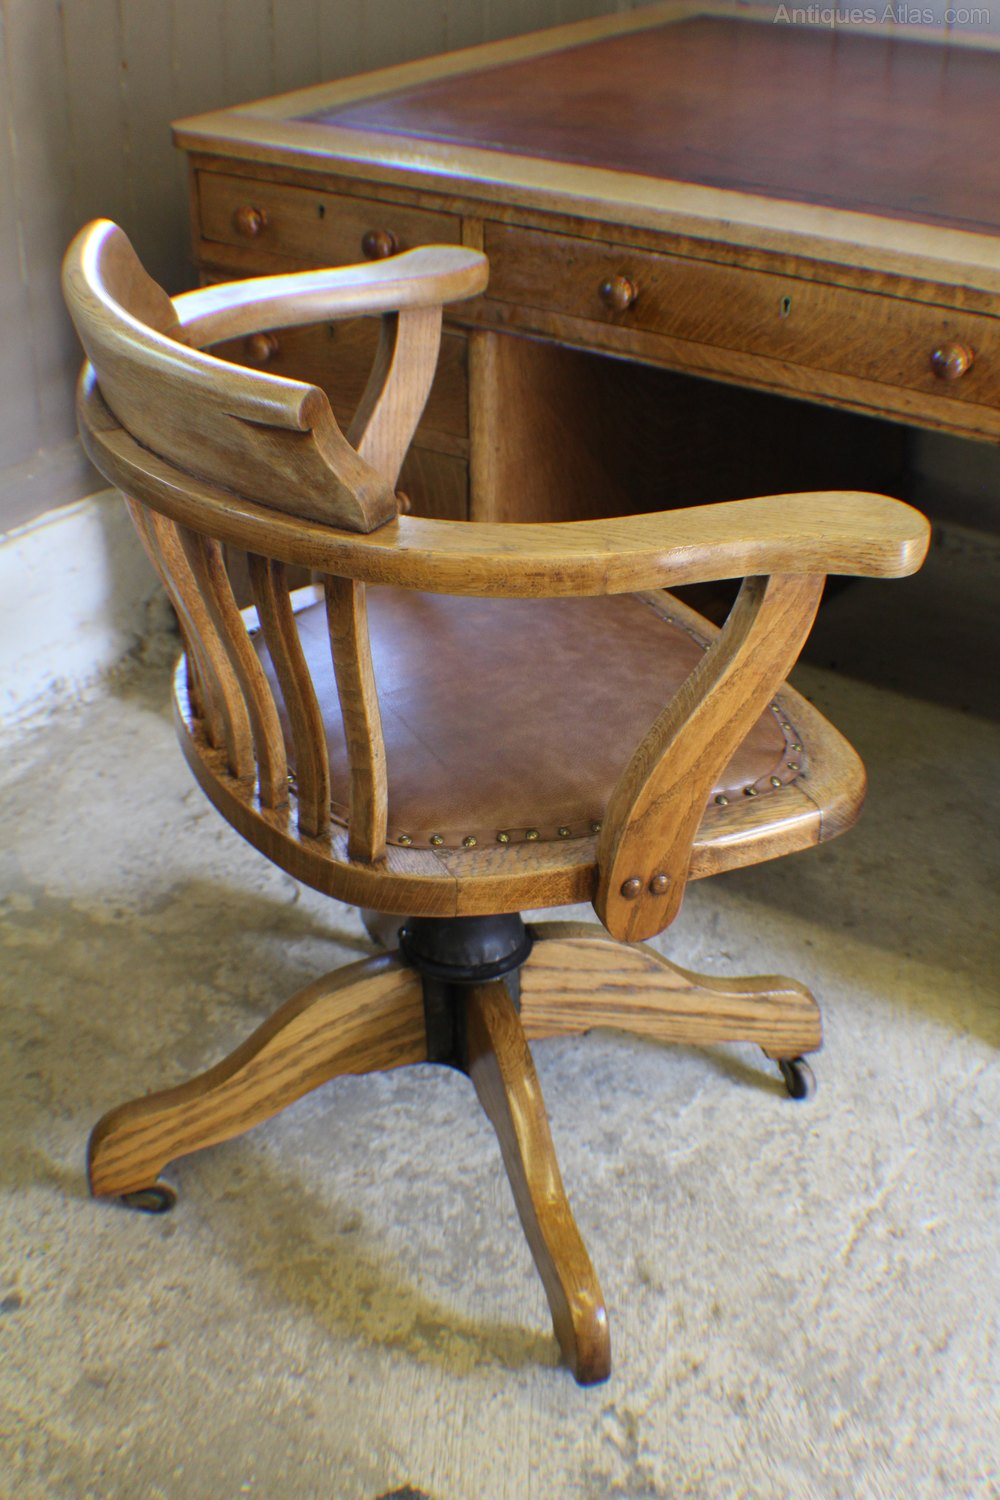 ... Antique Swivel Chairs office desk - Vintage Oak & 1930s Adjustable Desk Office Chair - Antiques Atlas